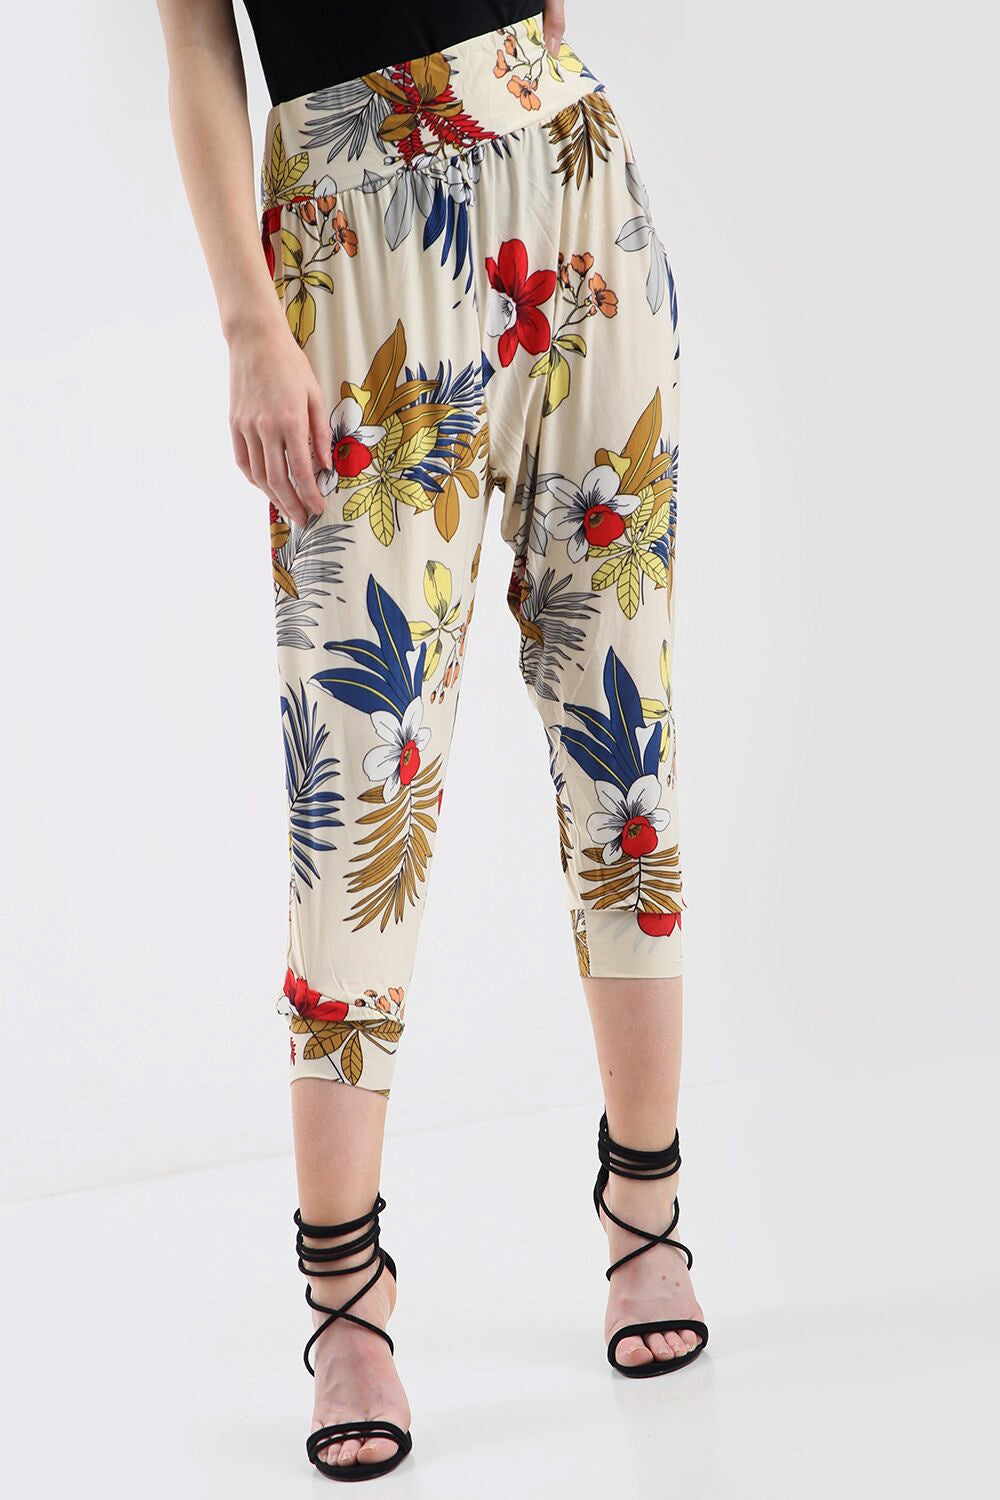 High Waisted Floral Print Cuffed Leg Pants - bejealous-com